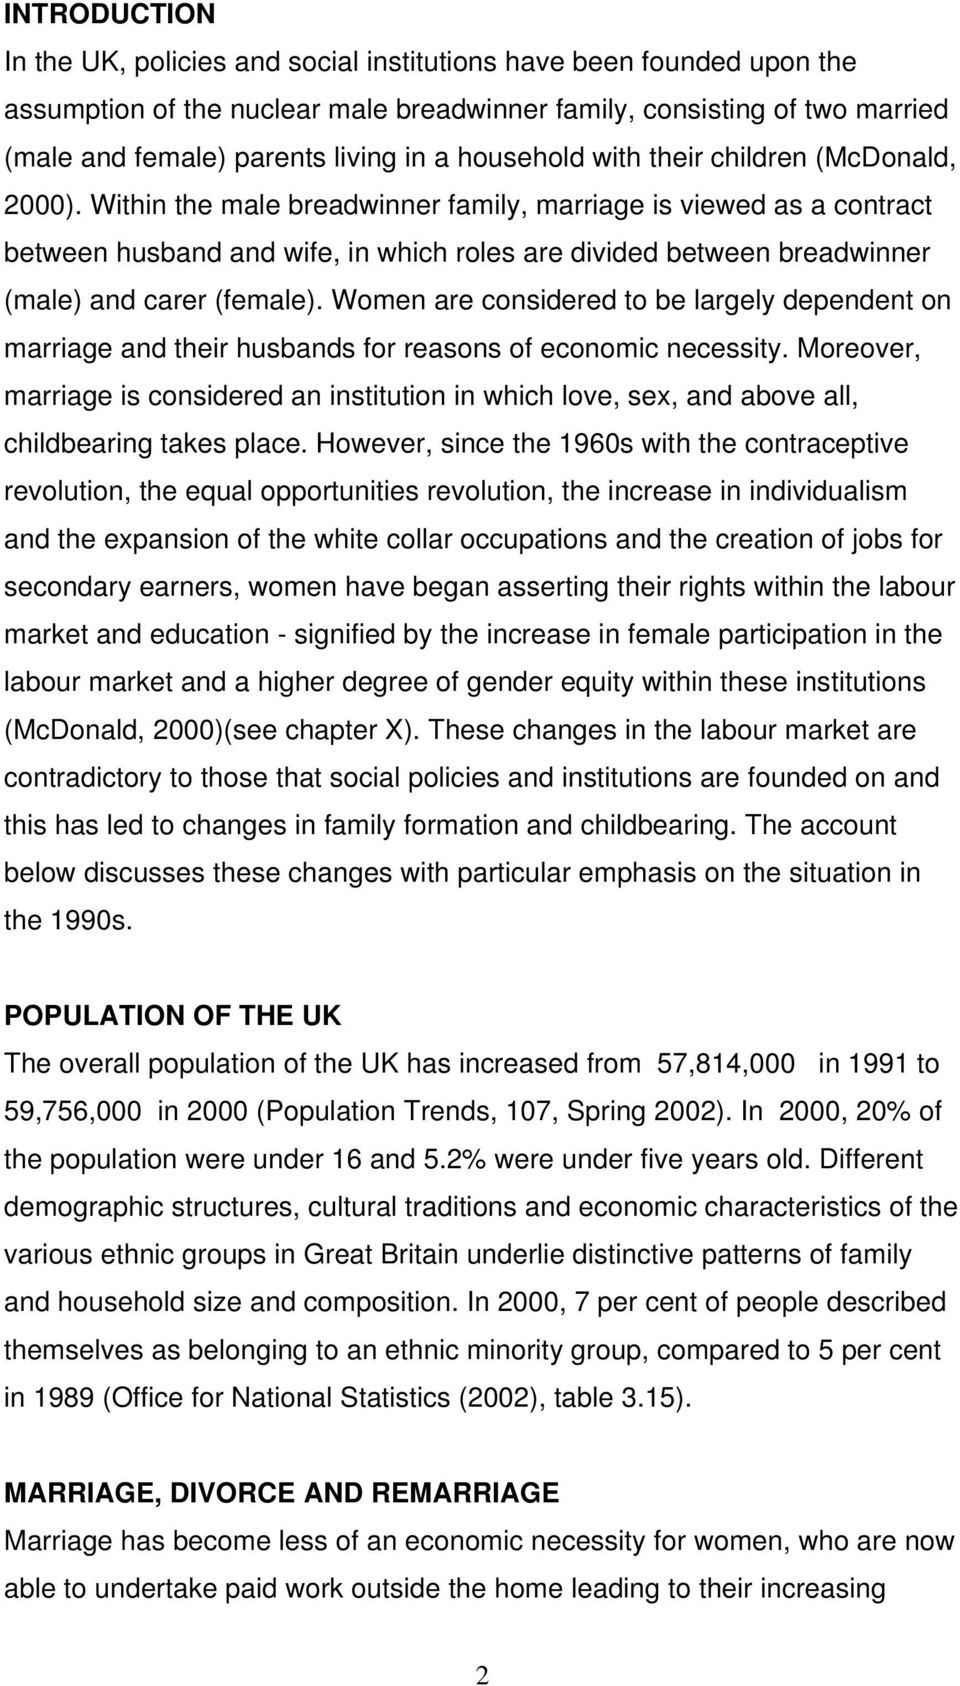 Within the male breadwinner family, marriage is viewed as a contract between husband and wife, in which roles are divided between breadwinner (male) and carer (female).